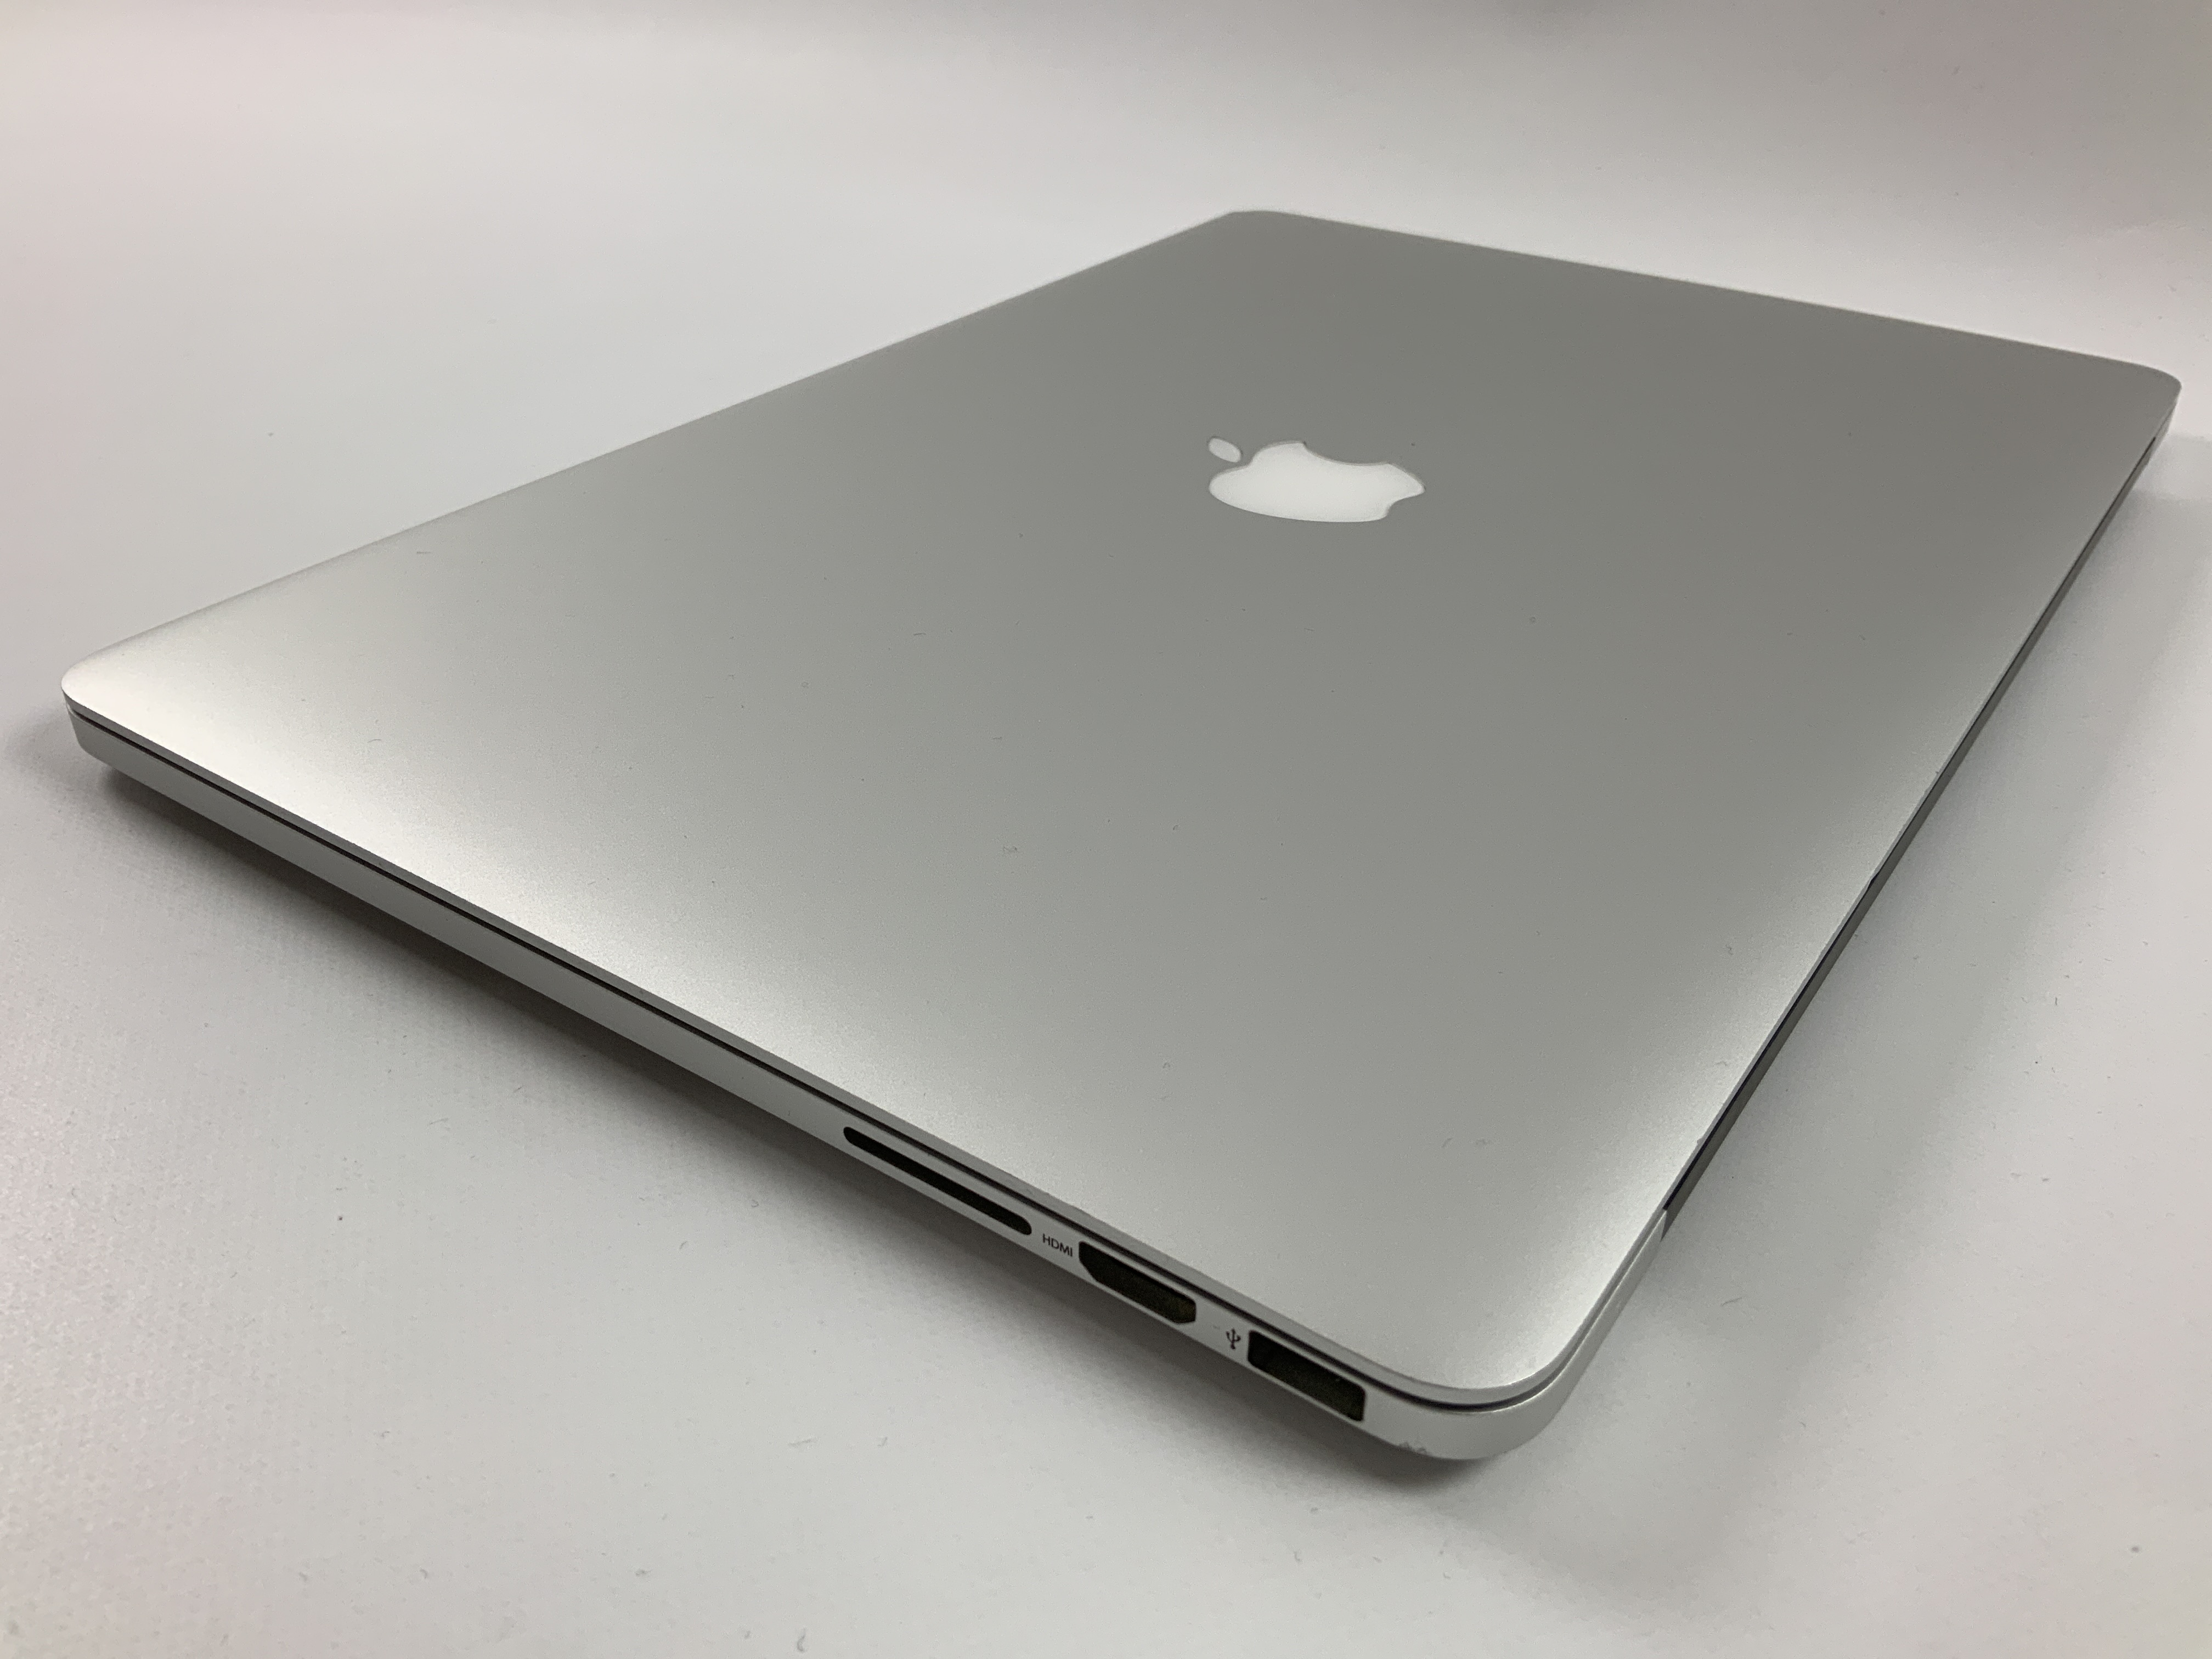 "MacBook Pro Retina 15"" Mid 2015 (Intel Quad-Core i7 2.2 GHz 16 GB RAM 256 GB SSD), Intel Quad-Core i7 2.2 GHz, 16 GB RAM, 256 GB SSD, immagine 3"